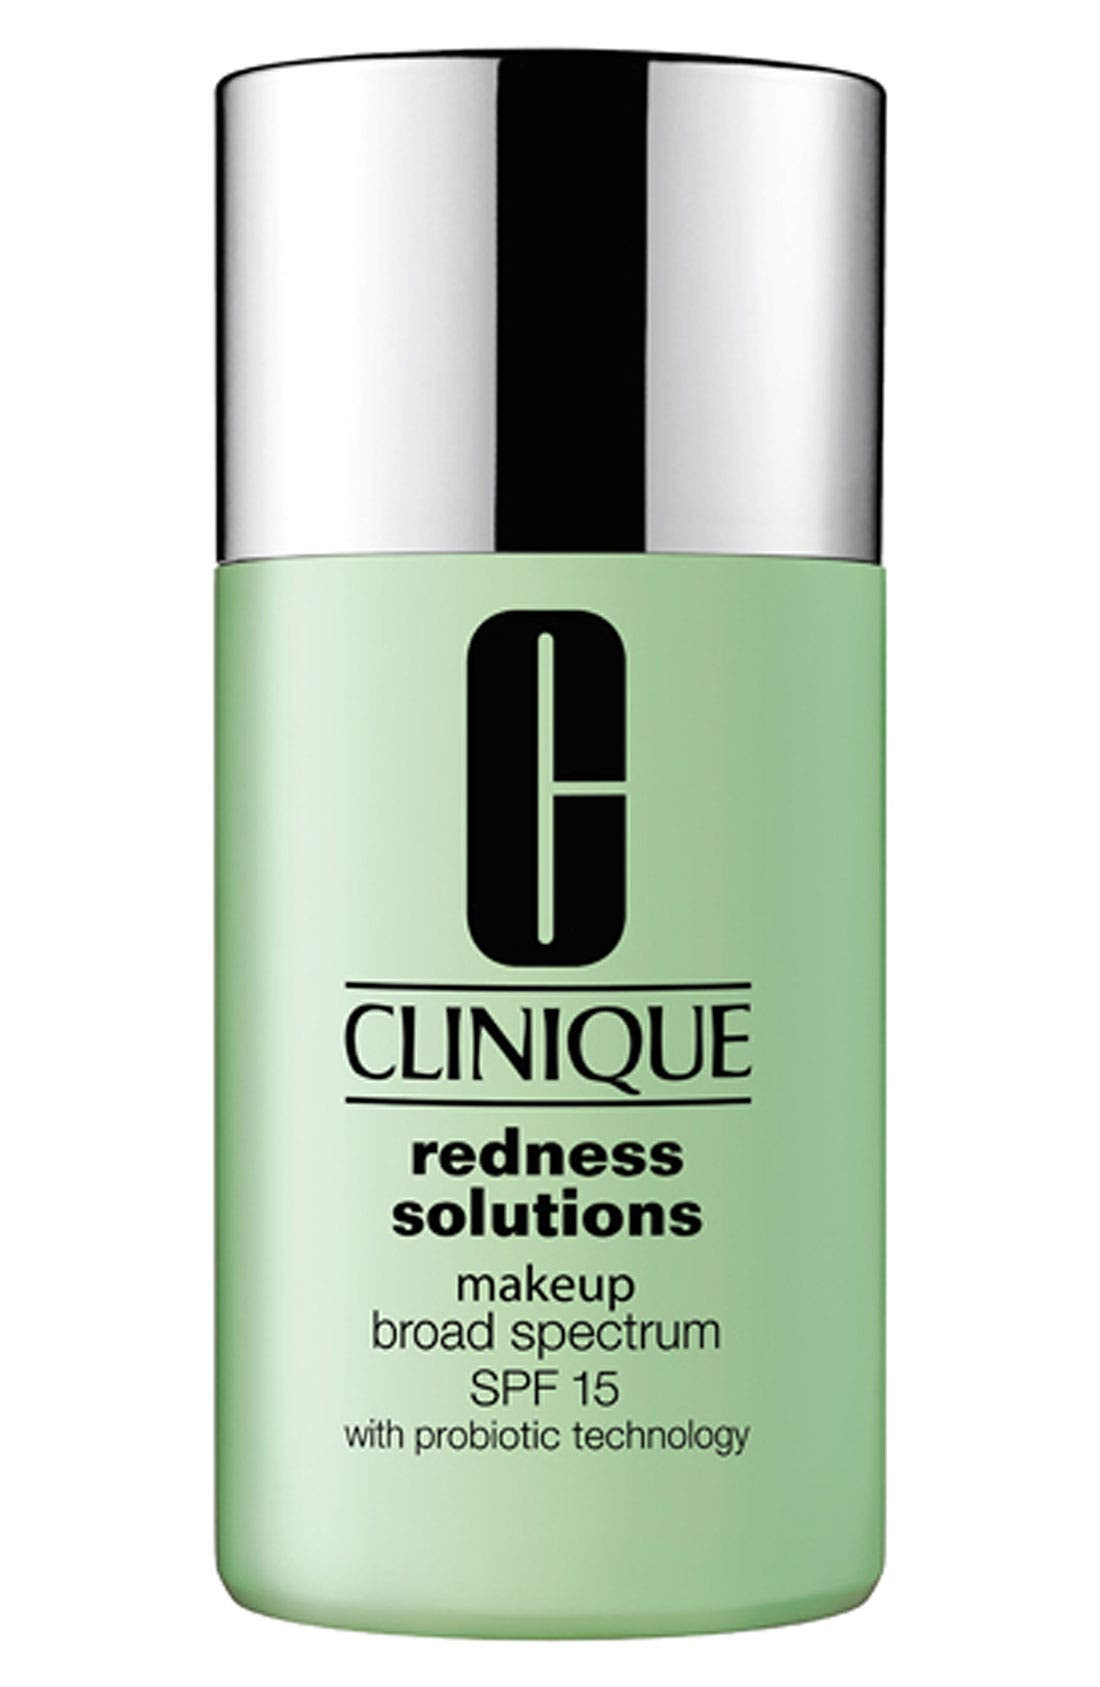 Clinique Redness Solutions Makeup Broad Spectrum SPF 15